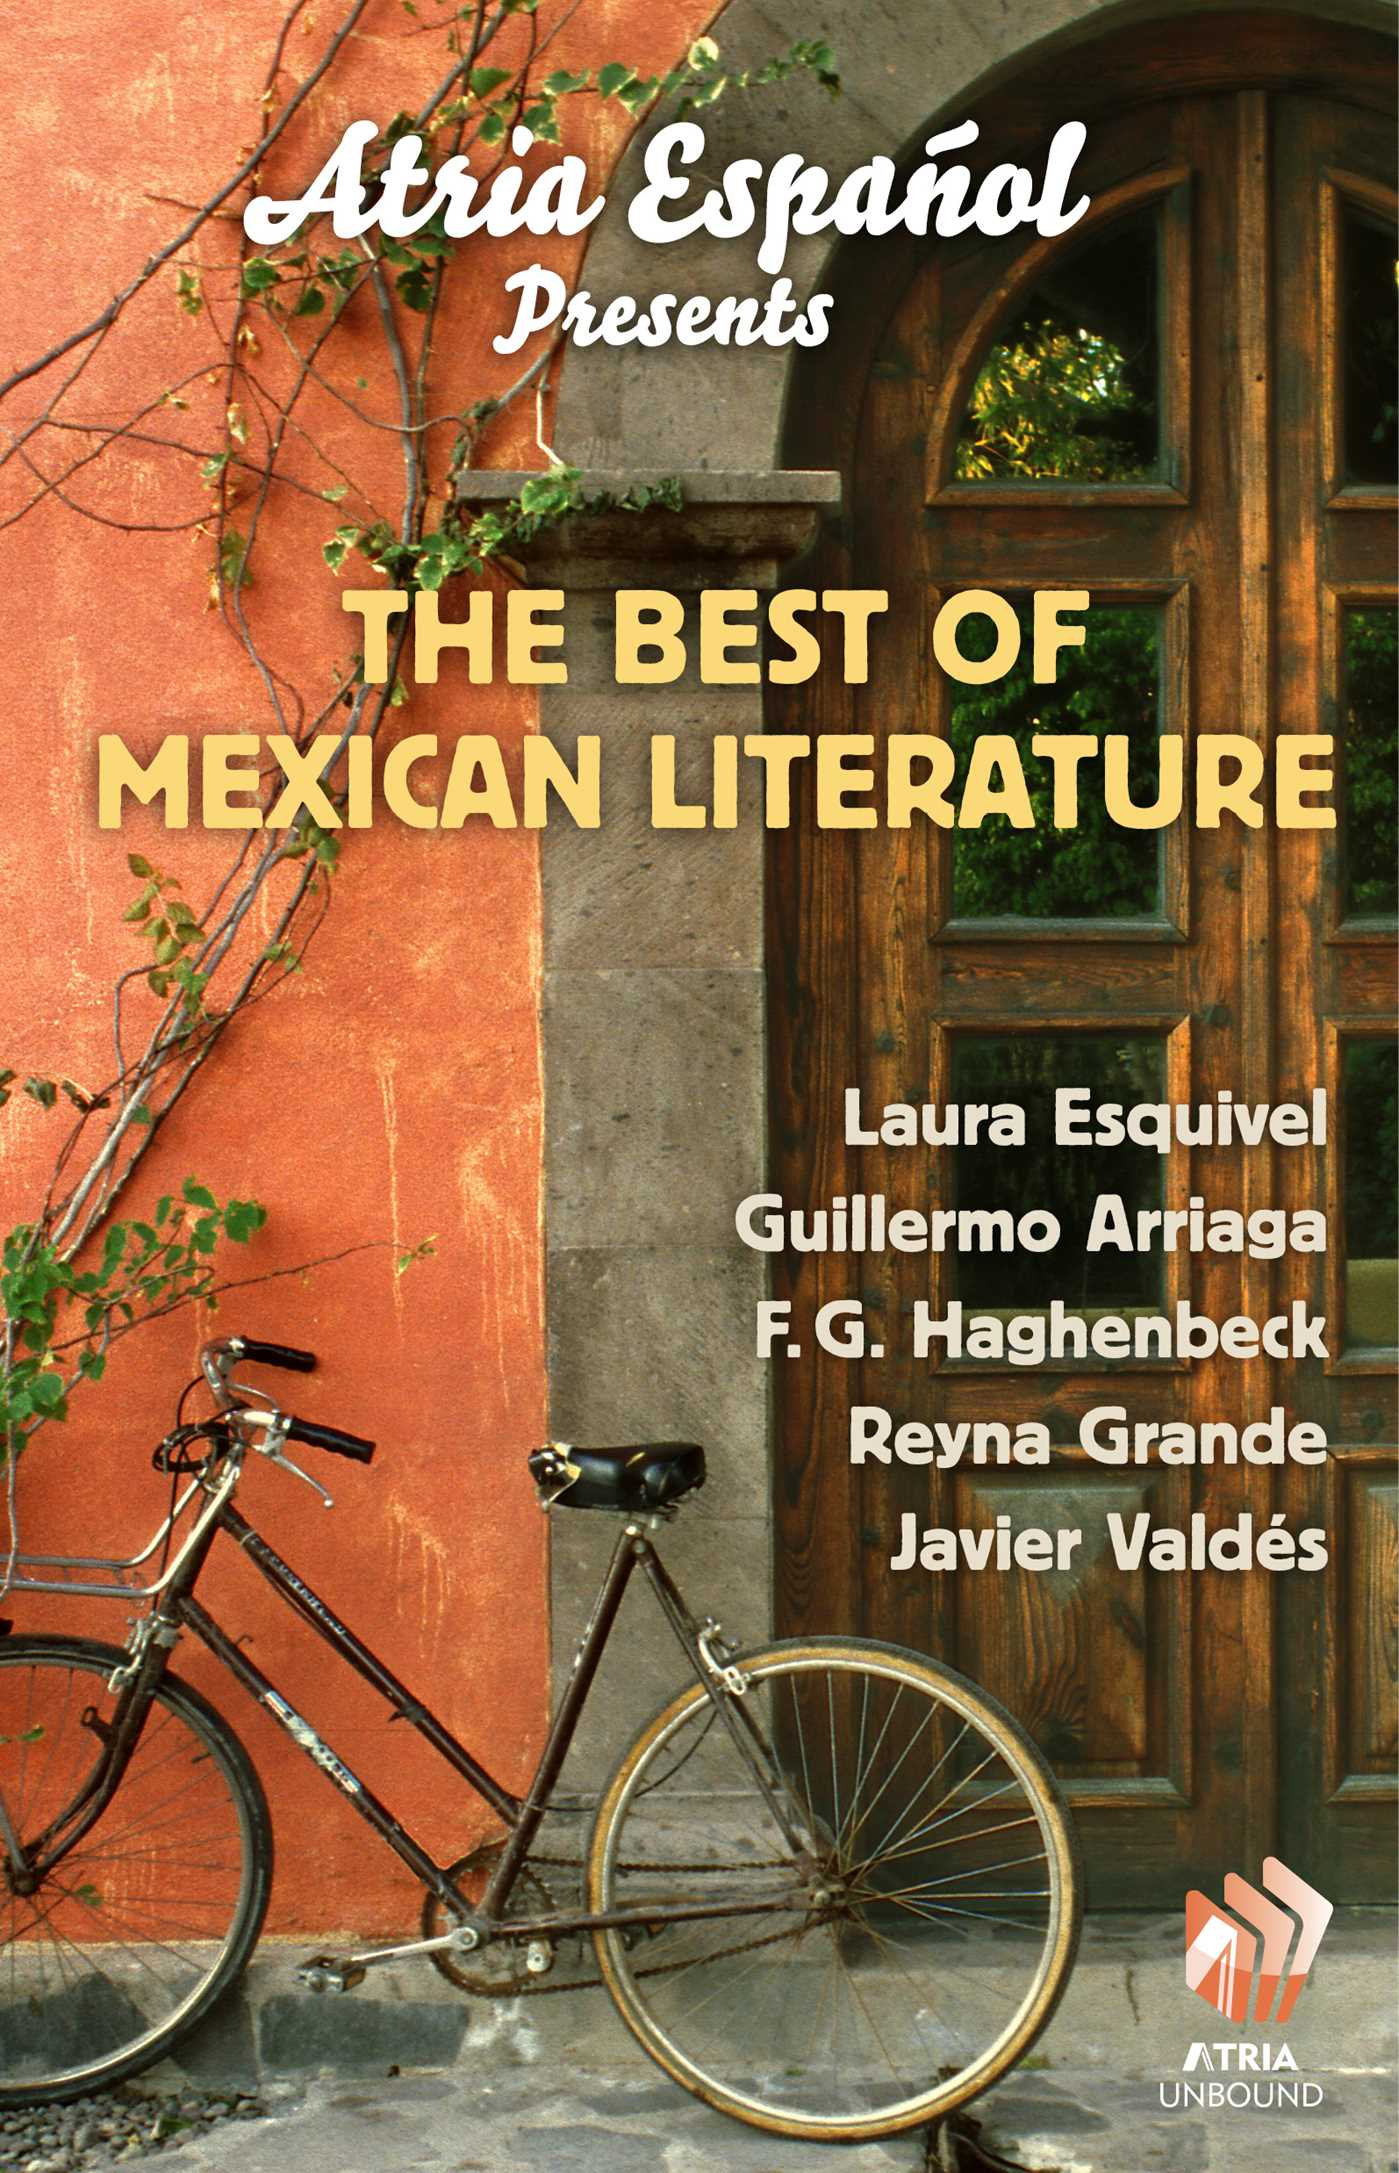 Atria espanol presents the best of mexican literature 9781476760193 hr